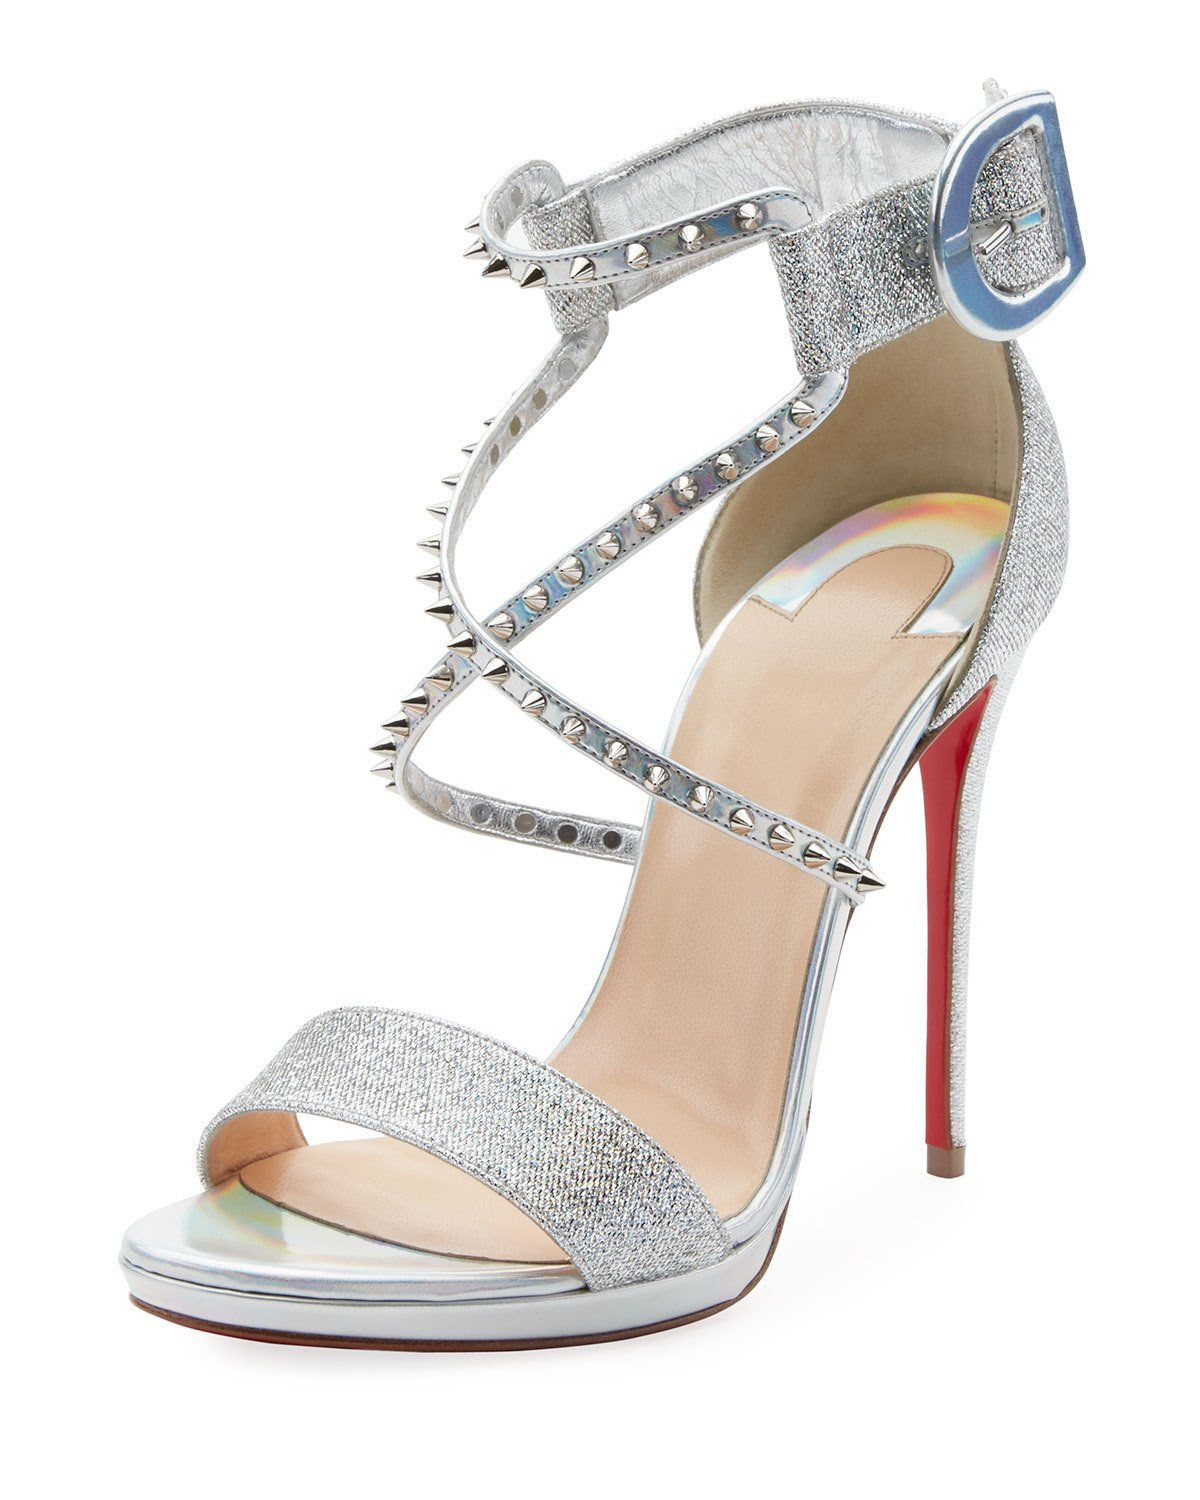 huge selection of 8e75f 49c2d Christian Louboutin Choca Lux 120mm Metallic Fabric Red Sole ...